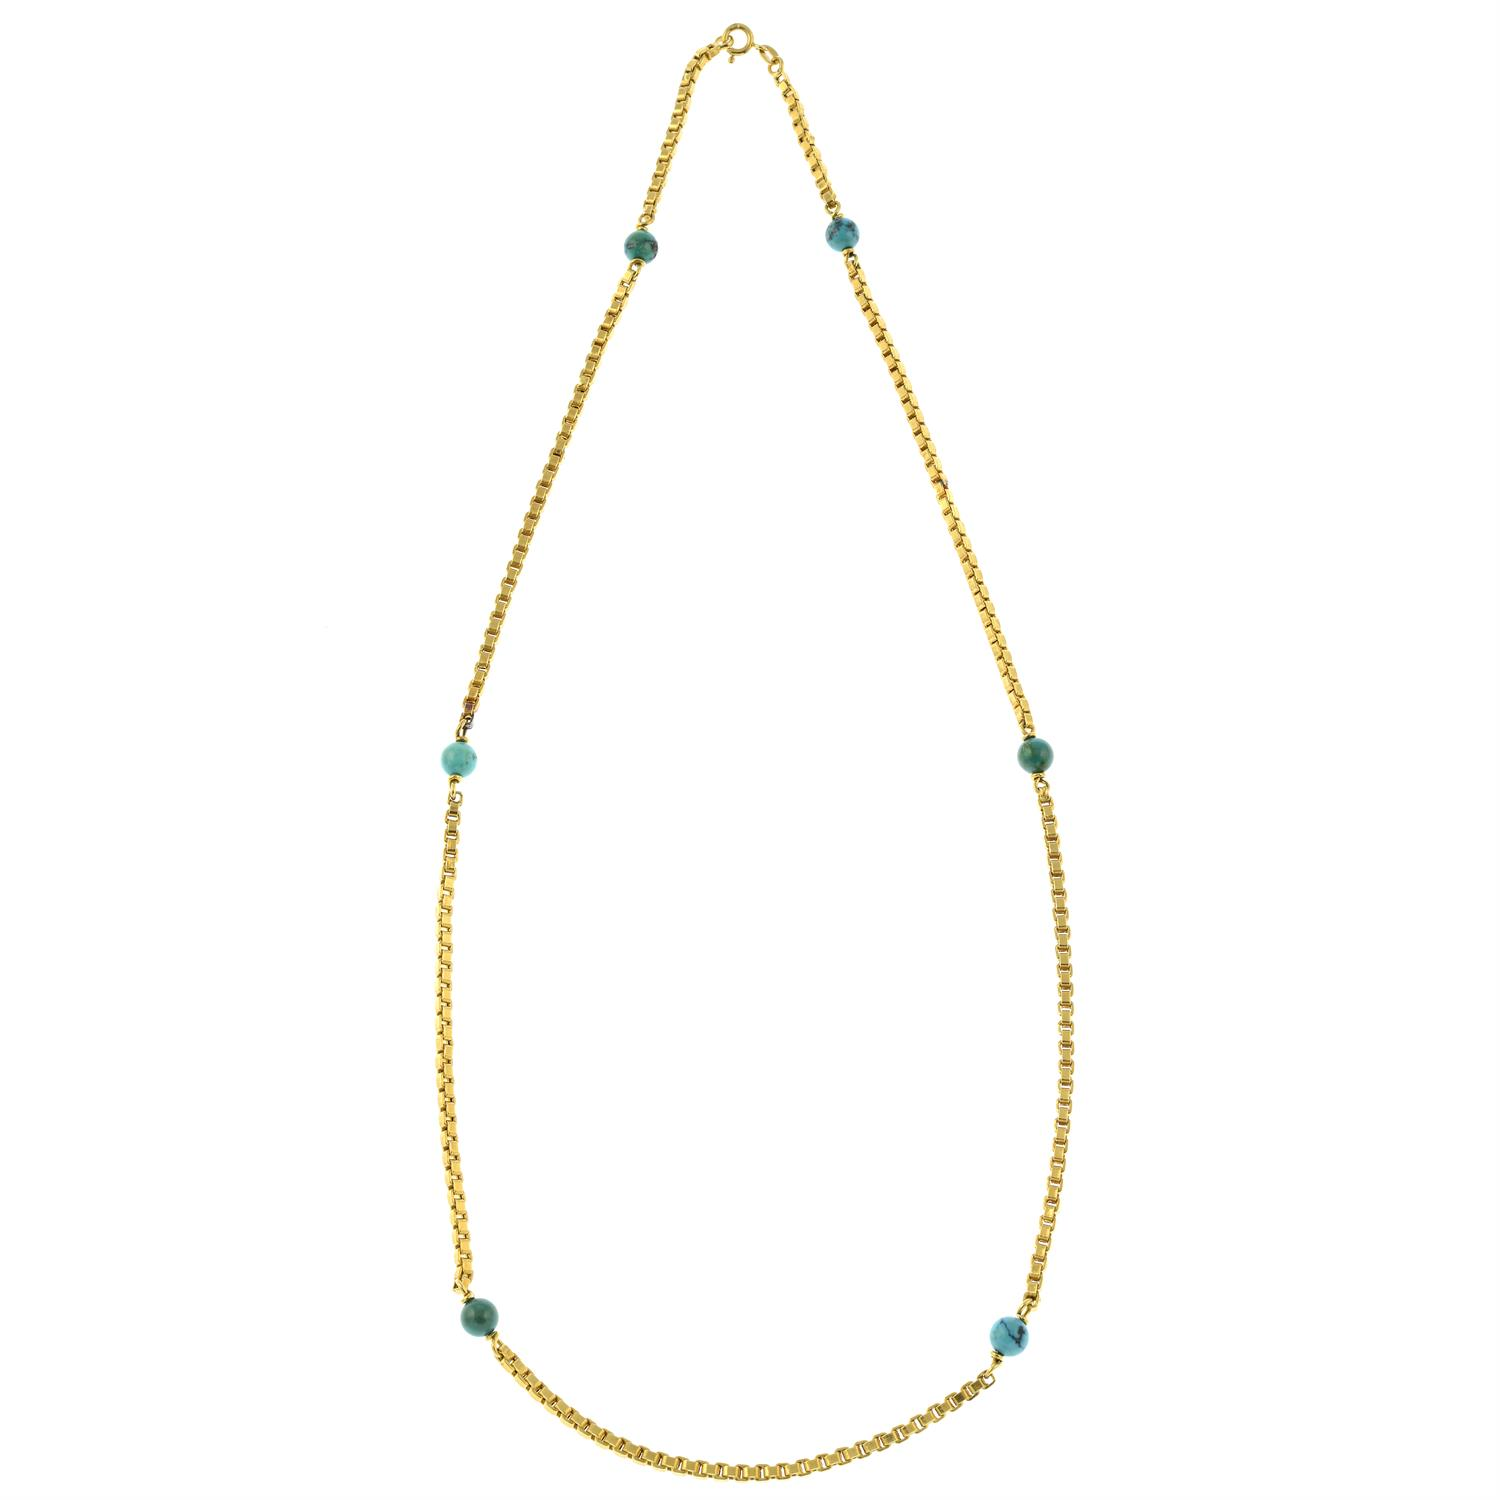 A mid 20th century Italian 18ct gold necklace, with turquoise matrix bead spacers, by Orf. - Image 3 of 5